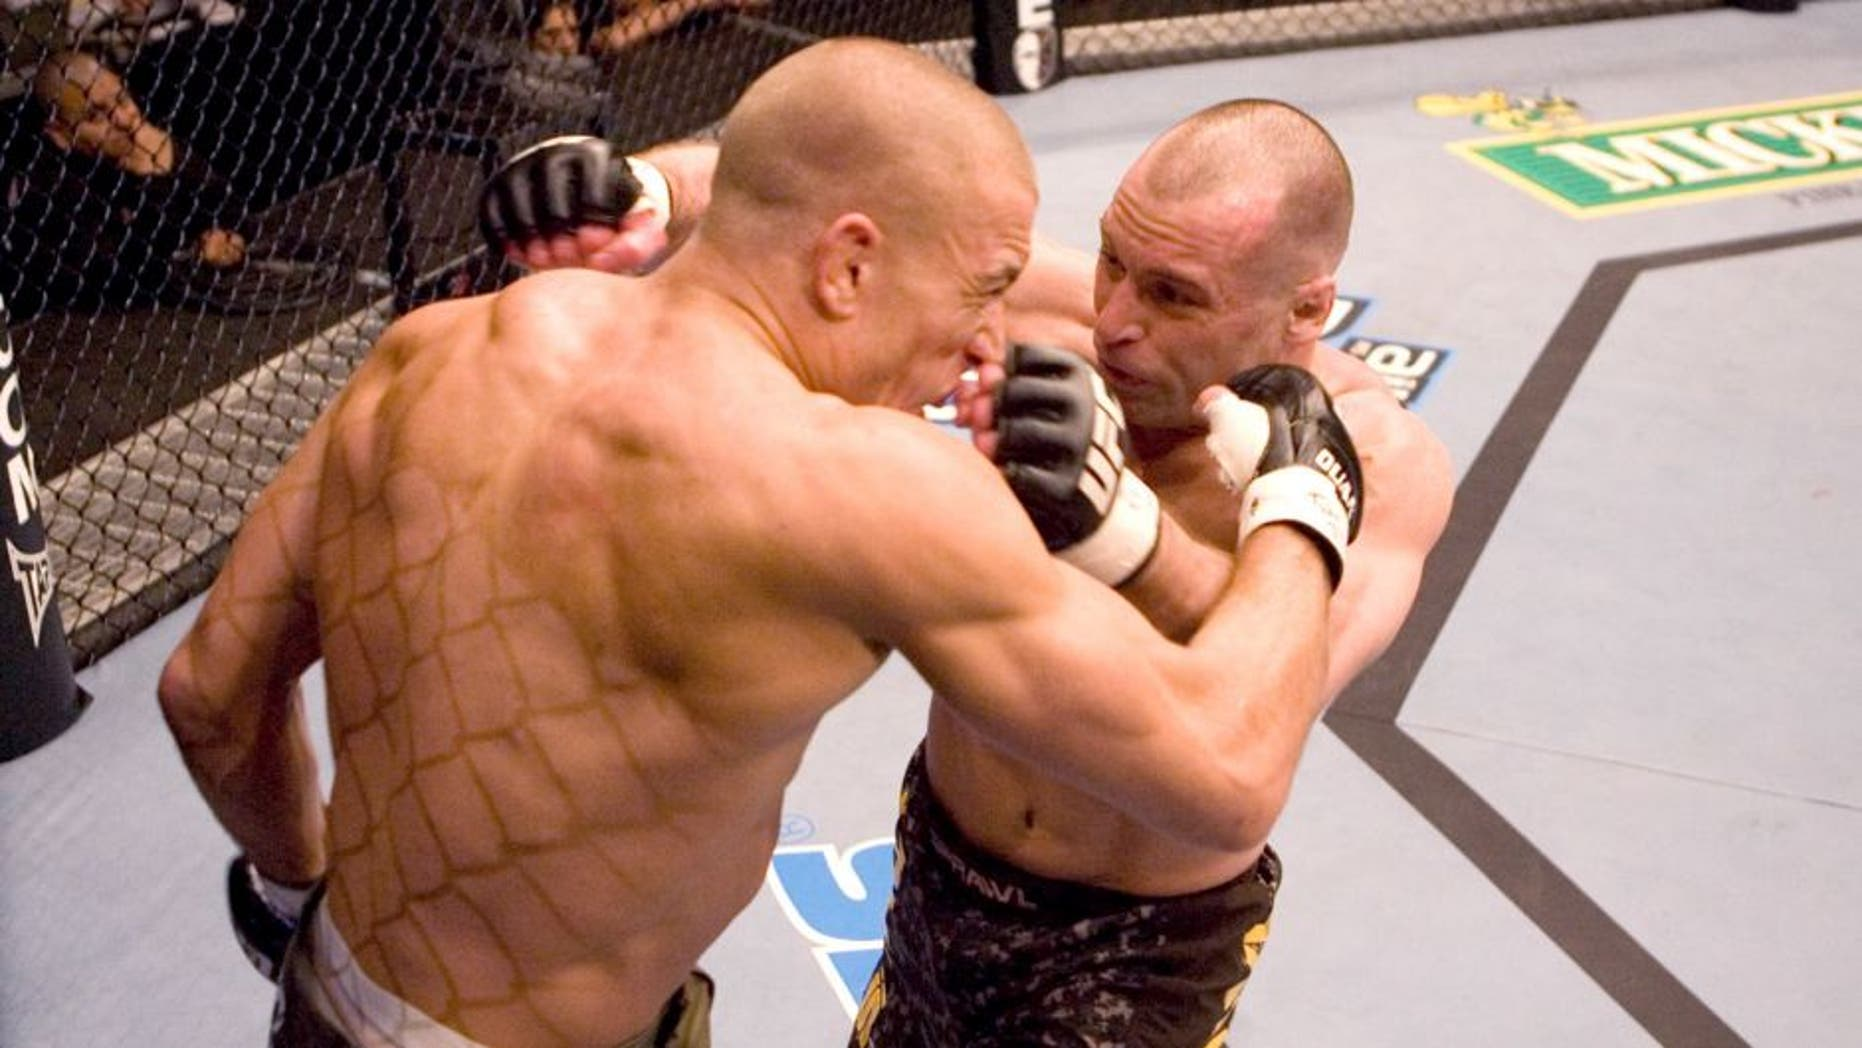 HOUSTON - APRIL 7: Matt Serra (brown/camo shorts) def. Georges St-Pierre (green shorts) - TKO - 3:25 round 1 during UFC 69 at Toyota Center on April 7, 2007 in Houston, Texas. (Photo by Josh Hedges/Zuffa LLC via Getty Images)